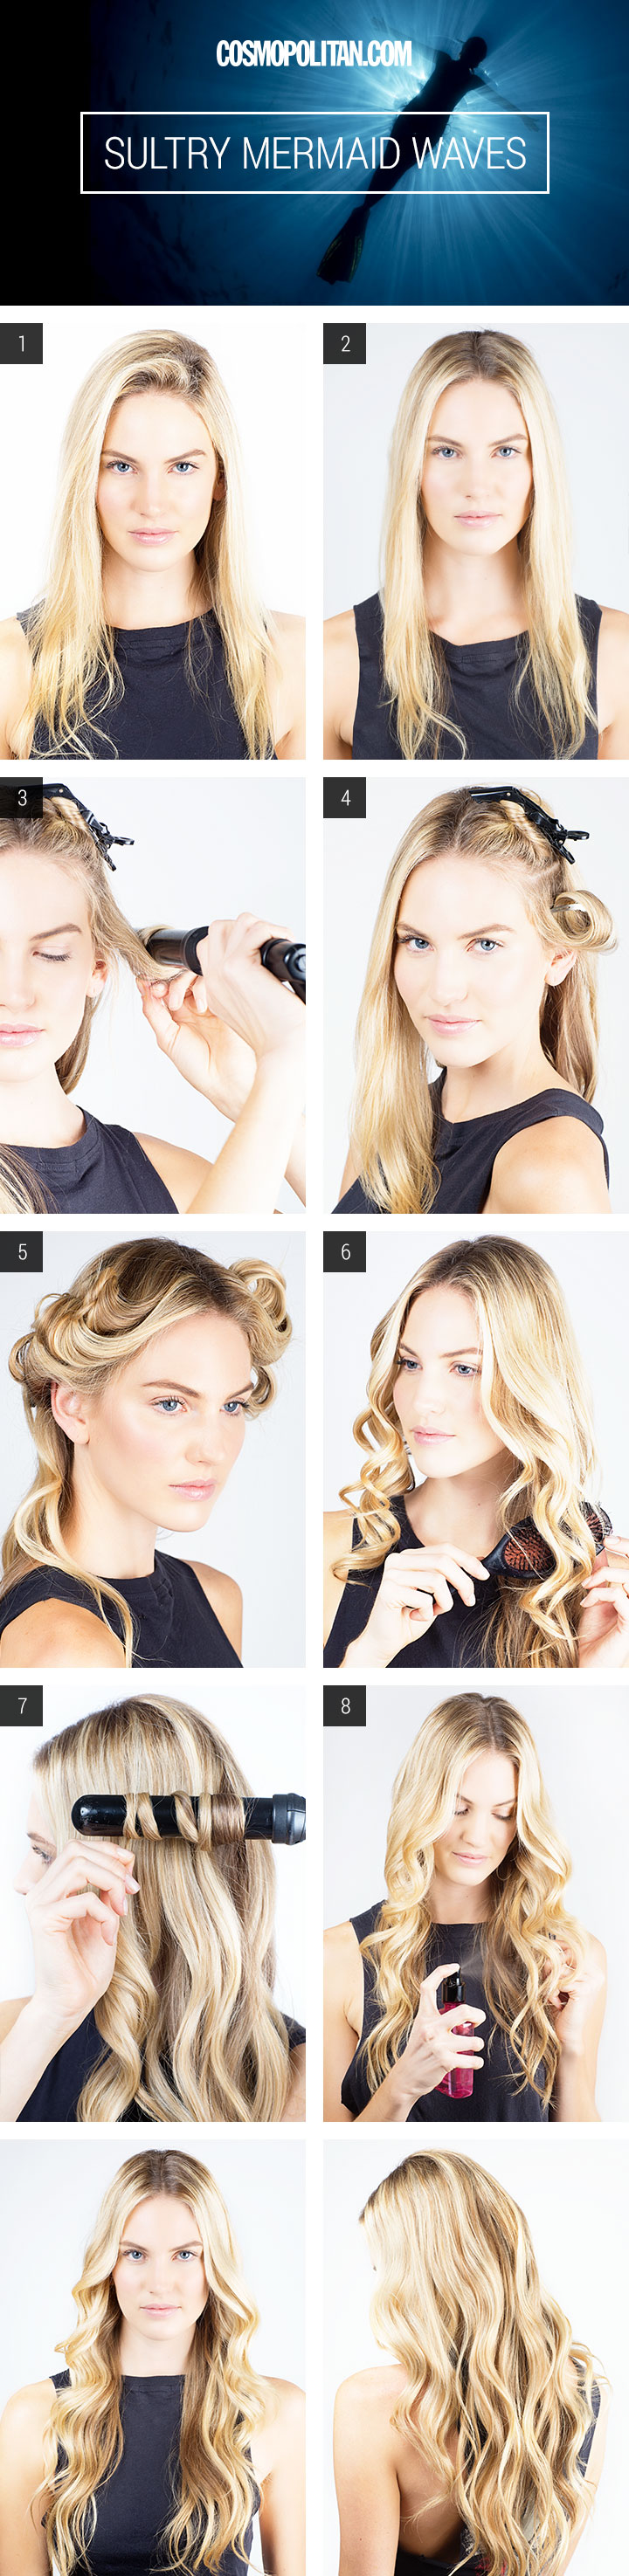 Sultry Mermaid Waves Pictures Photos And Images For